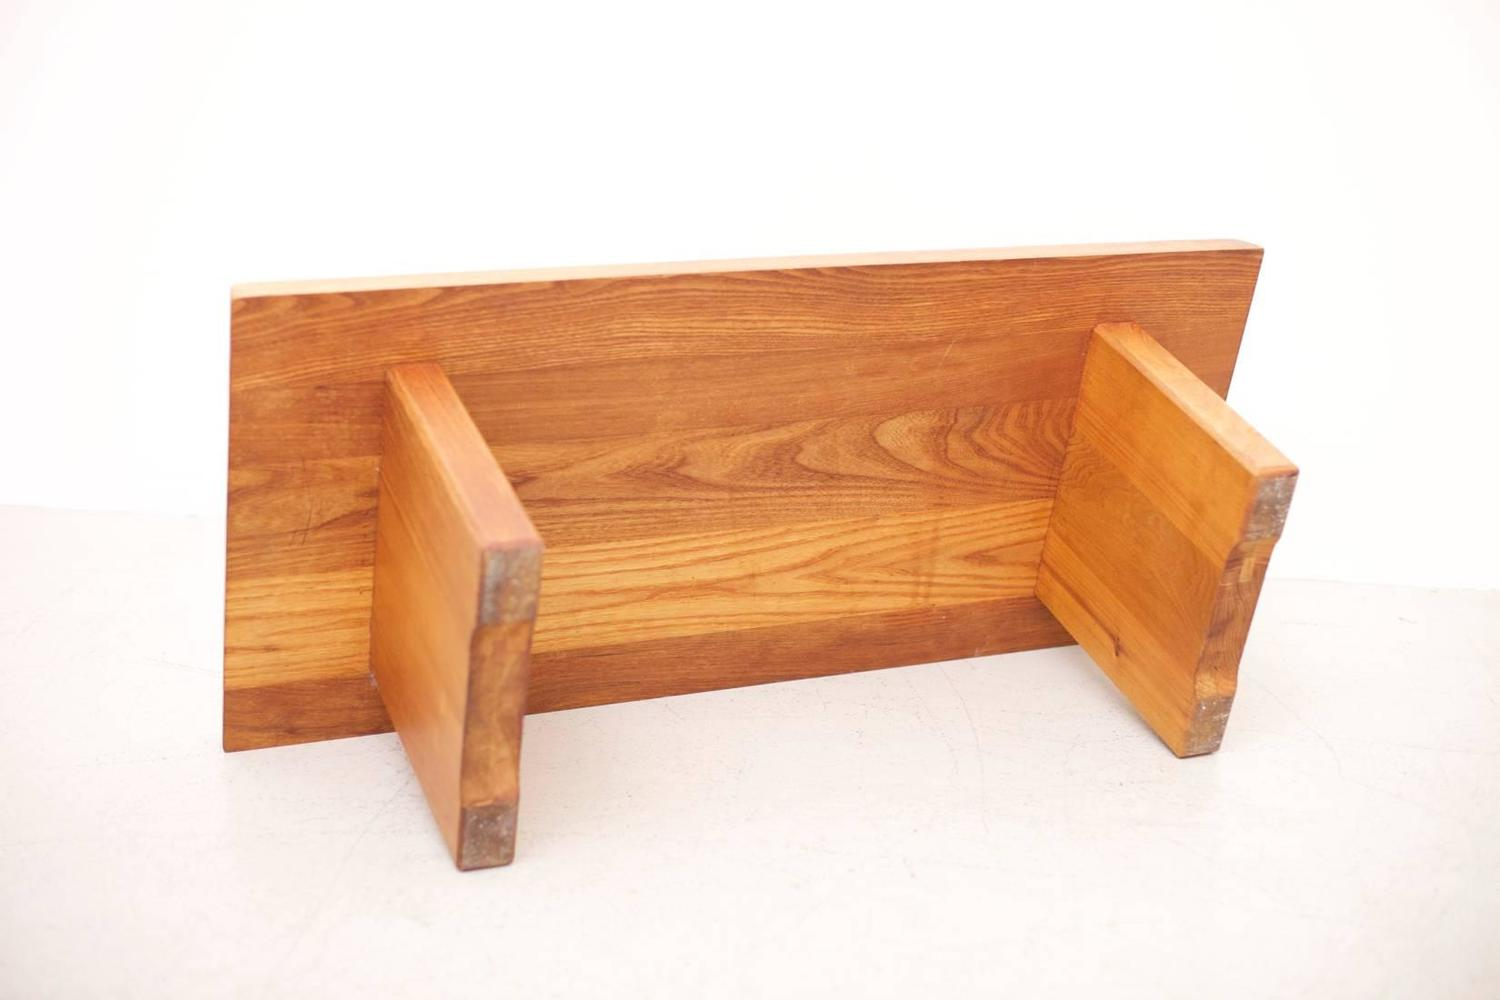 pierre chapo coffee table in elm wood france 1970s for sale at 1stdibs. Black Bedroom Furniture Sets. Home Design Ideas